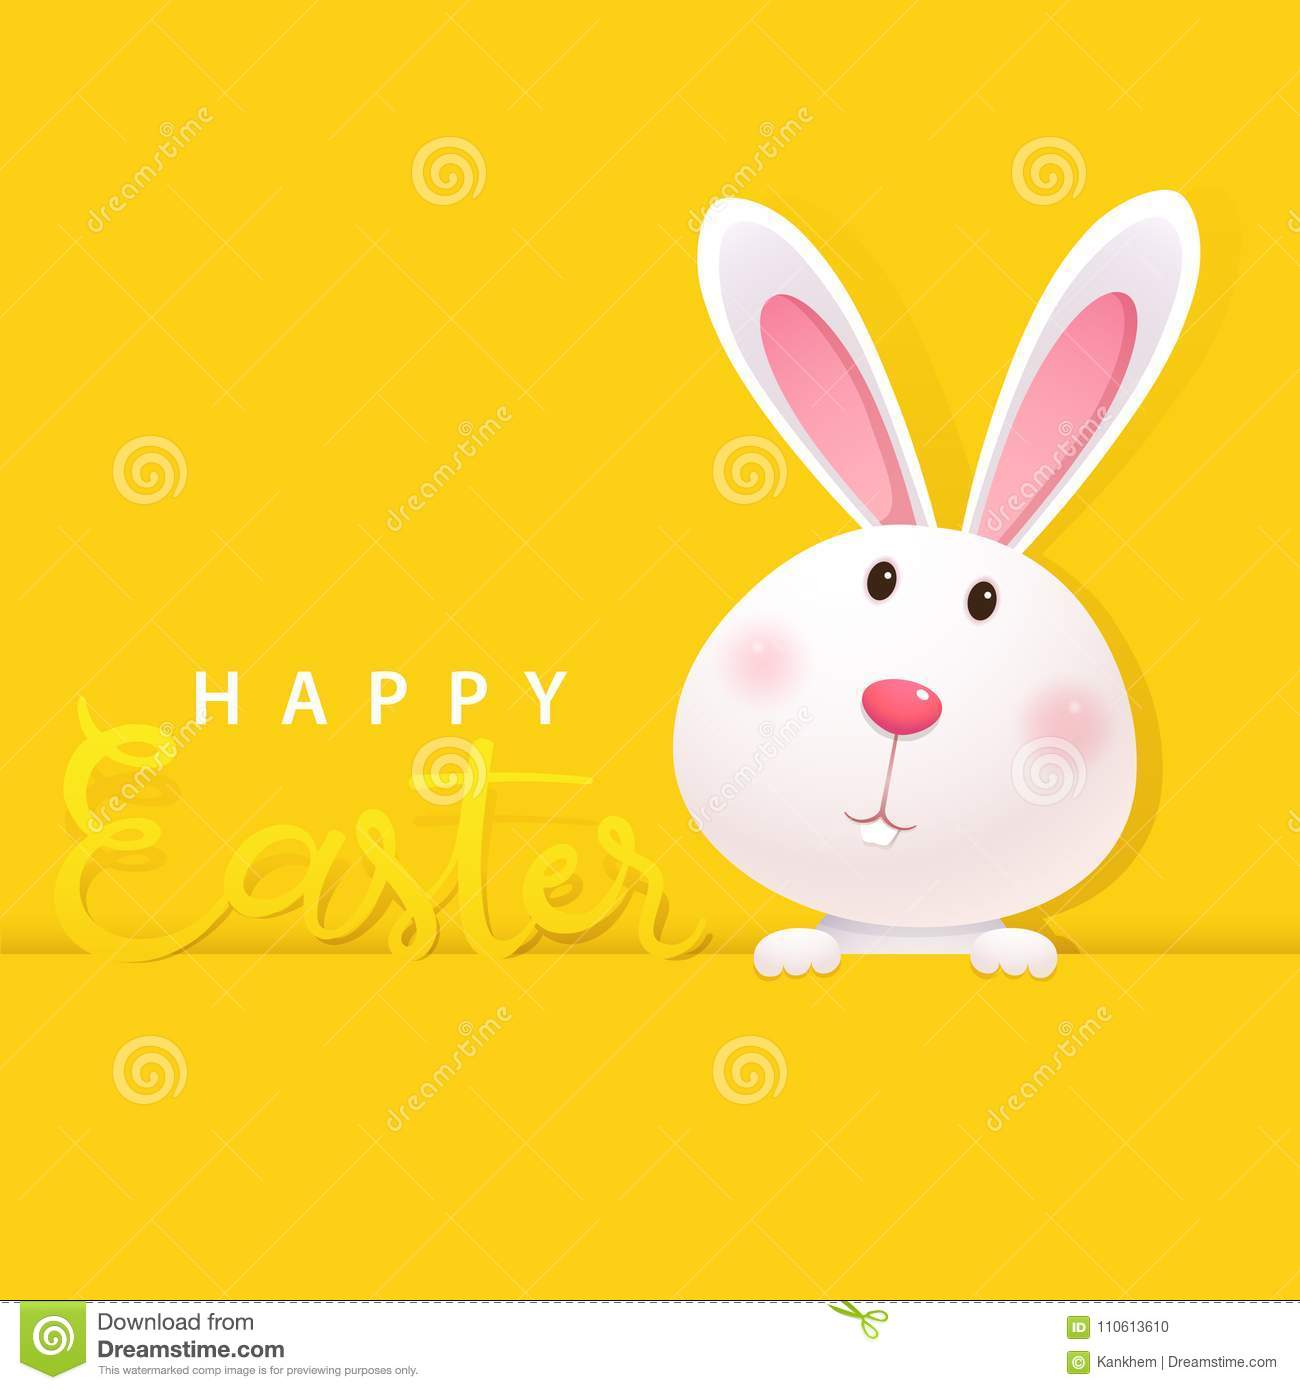 Greeting Card With White Easter Bunny On Yellow Background Happy